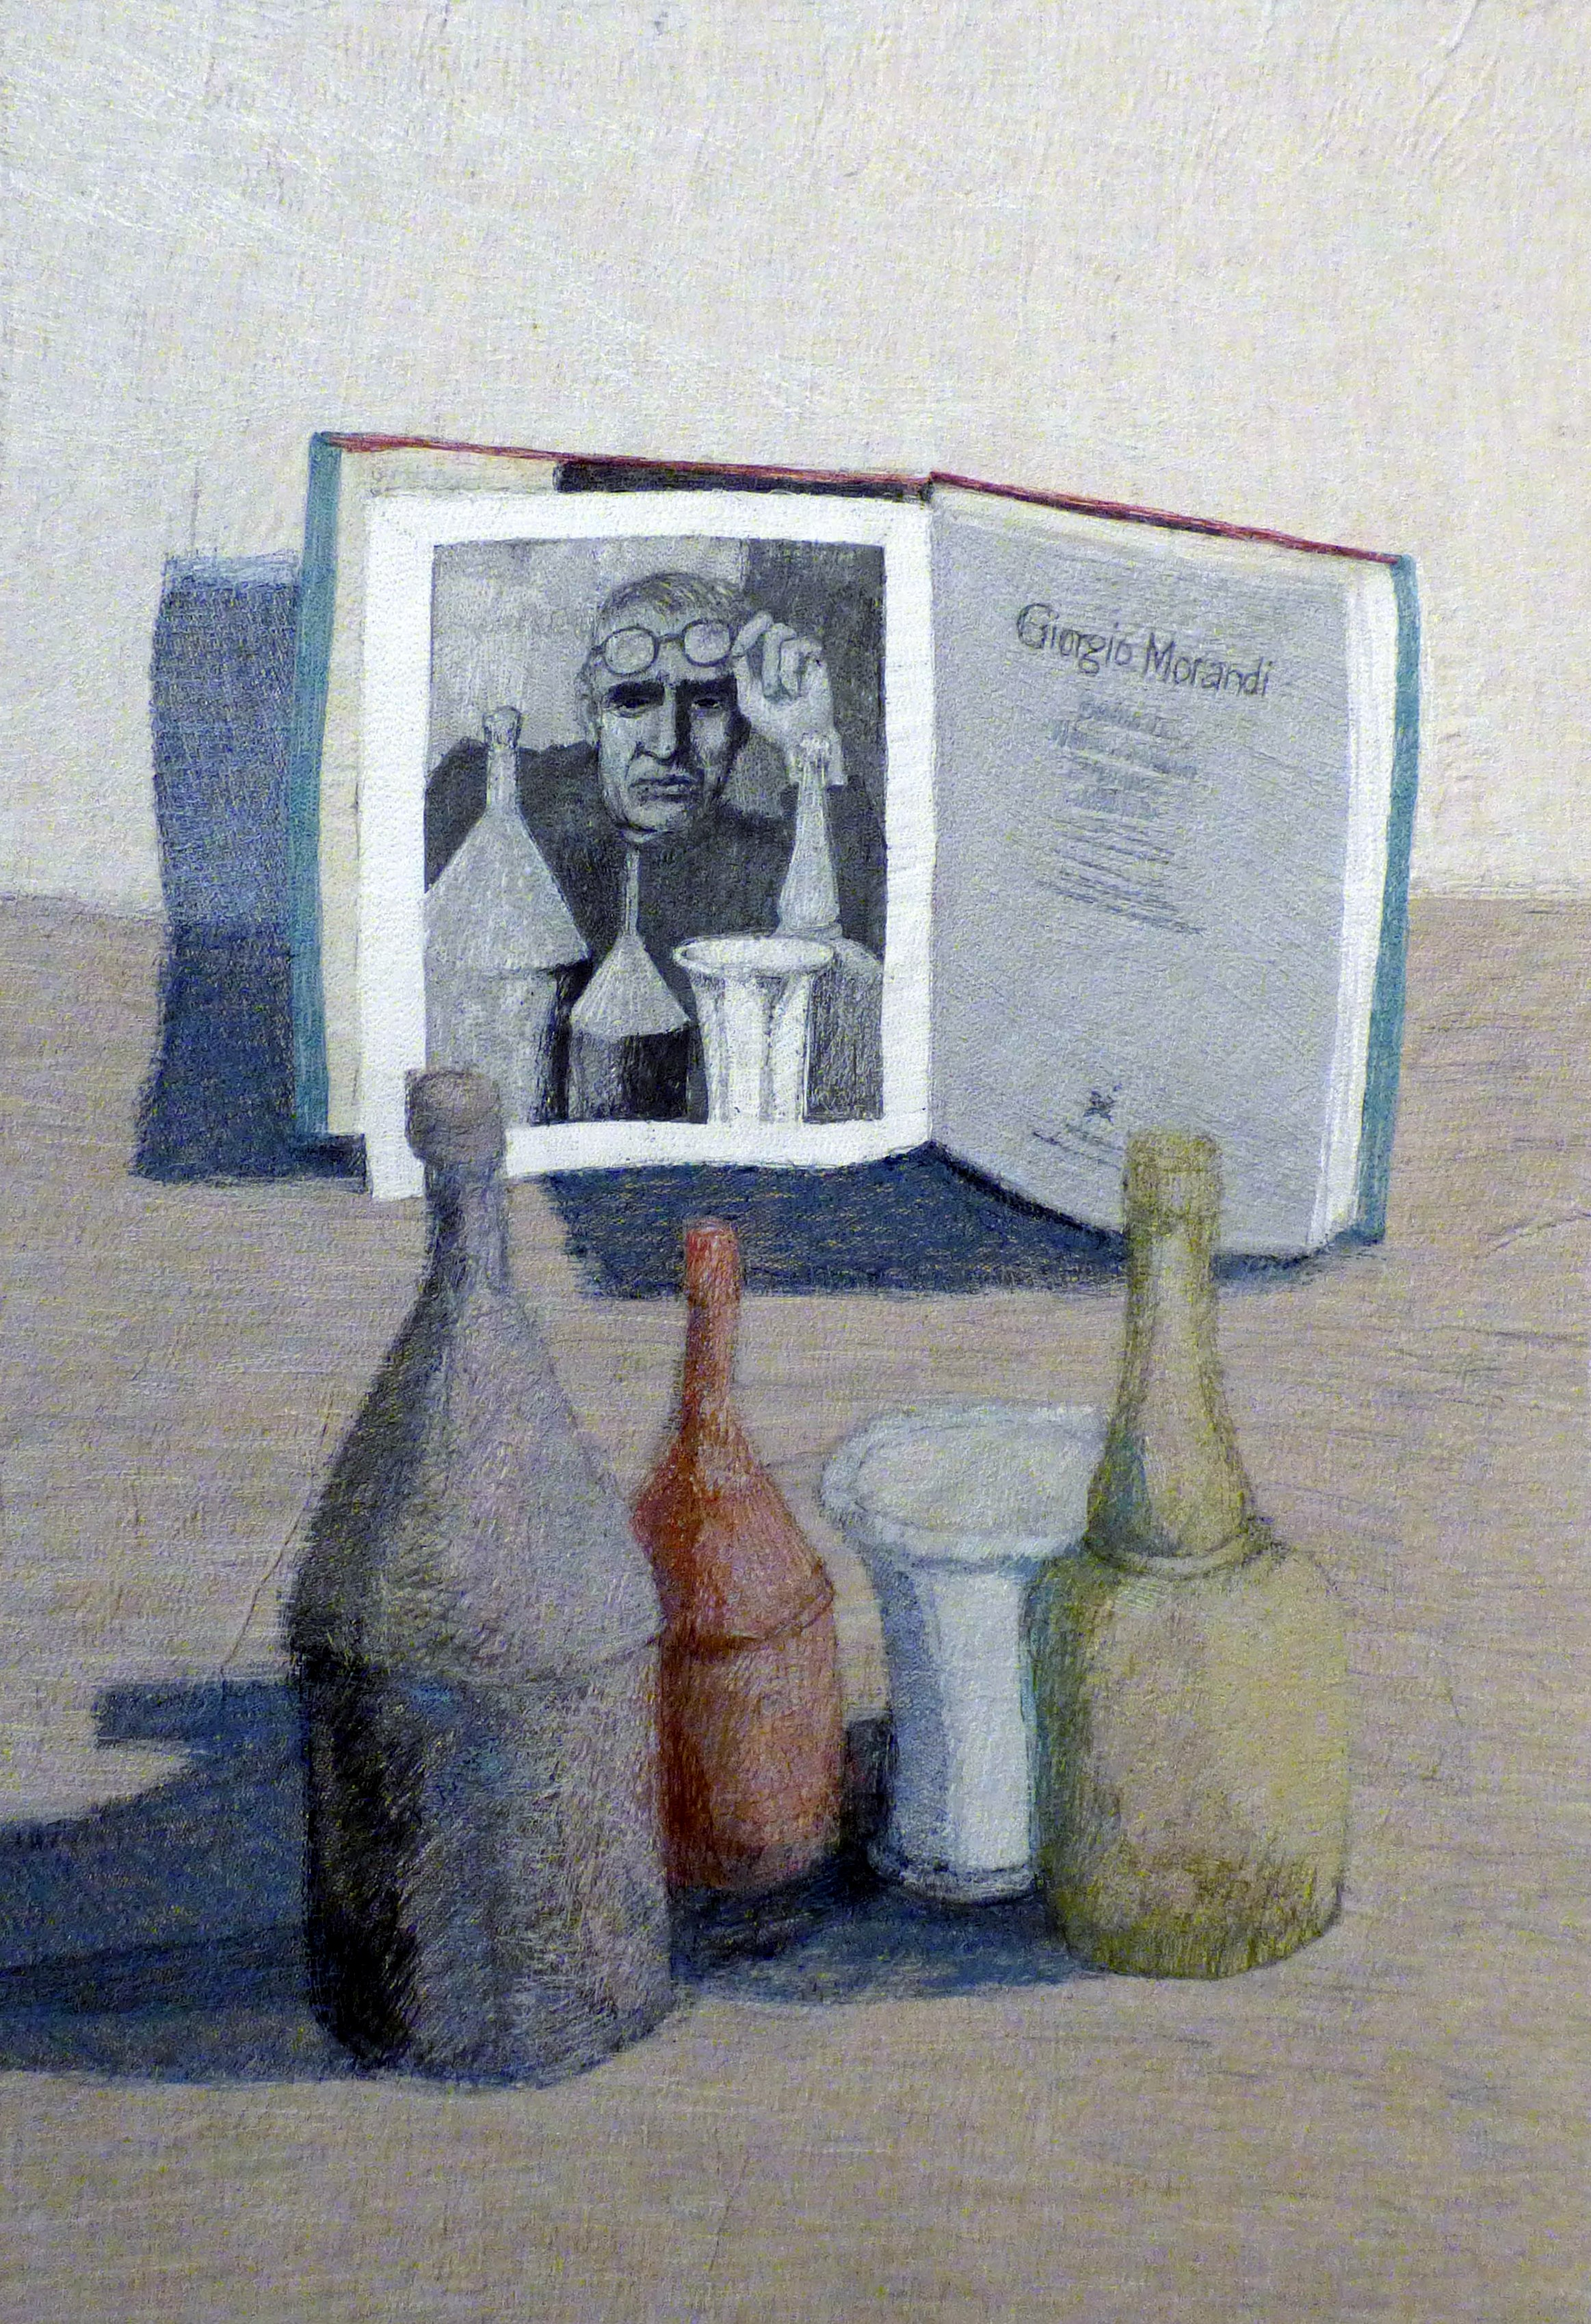 HOMAGE (TO THE PAINTER MORANDI) by Audrey Walker, stitched textile, 2007